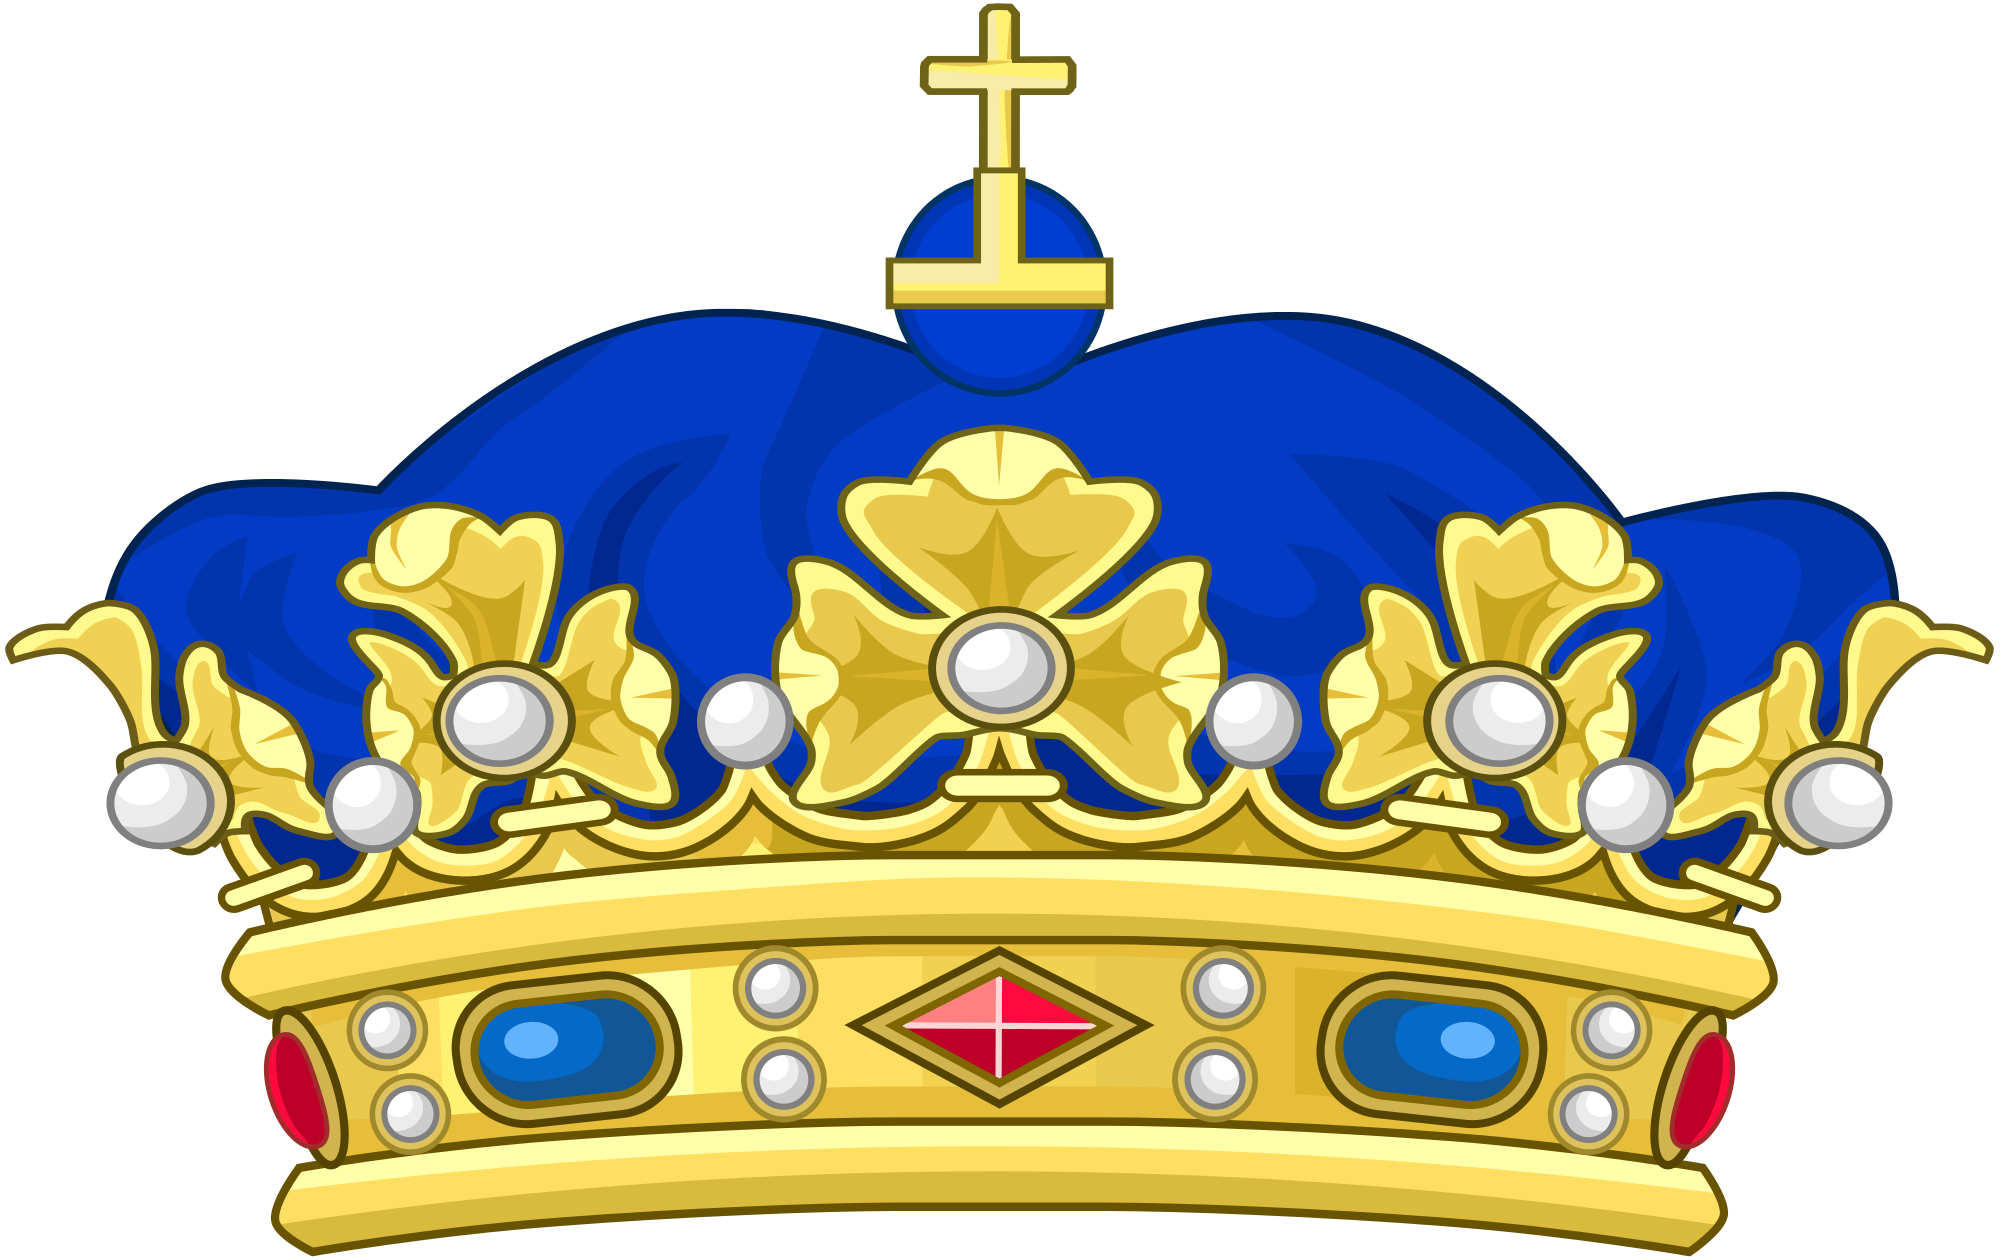 Blue crown png. File of a napoleonic